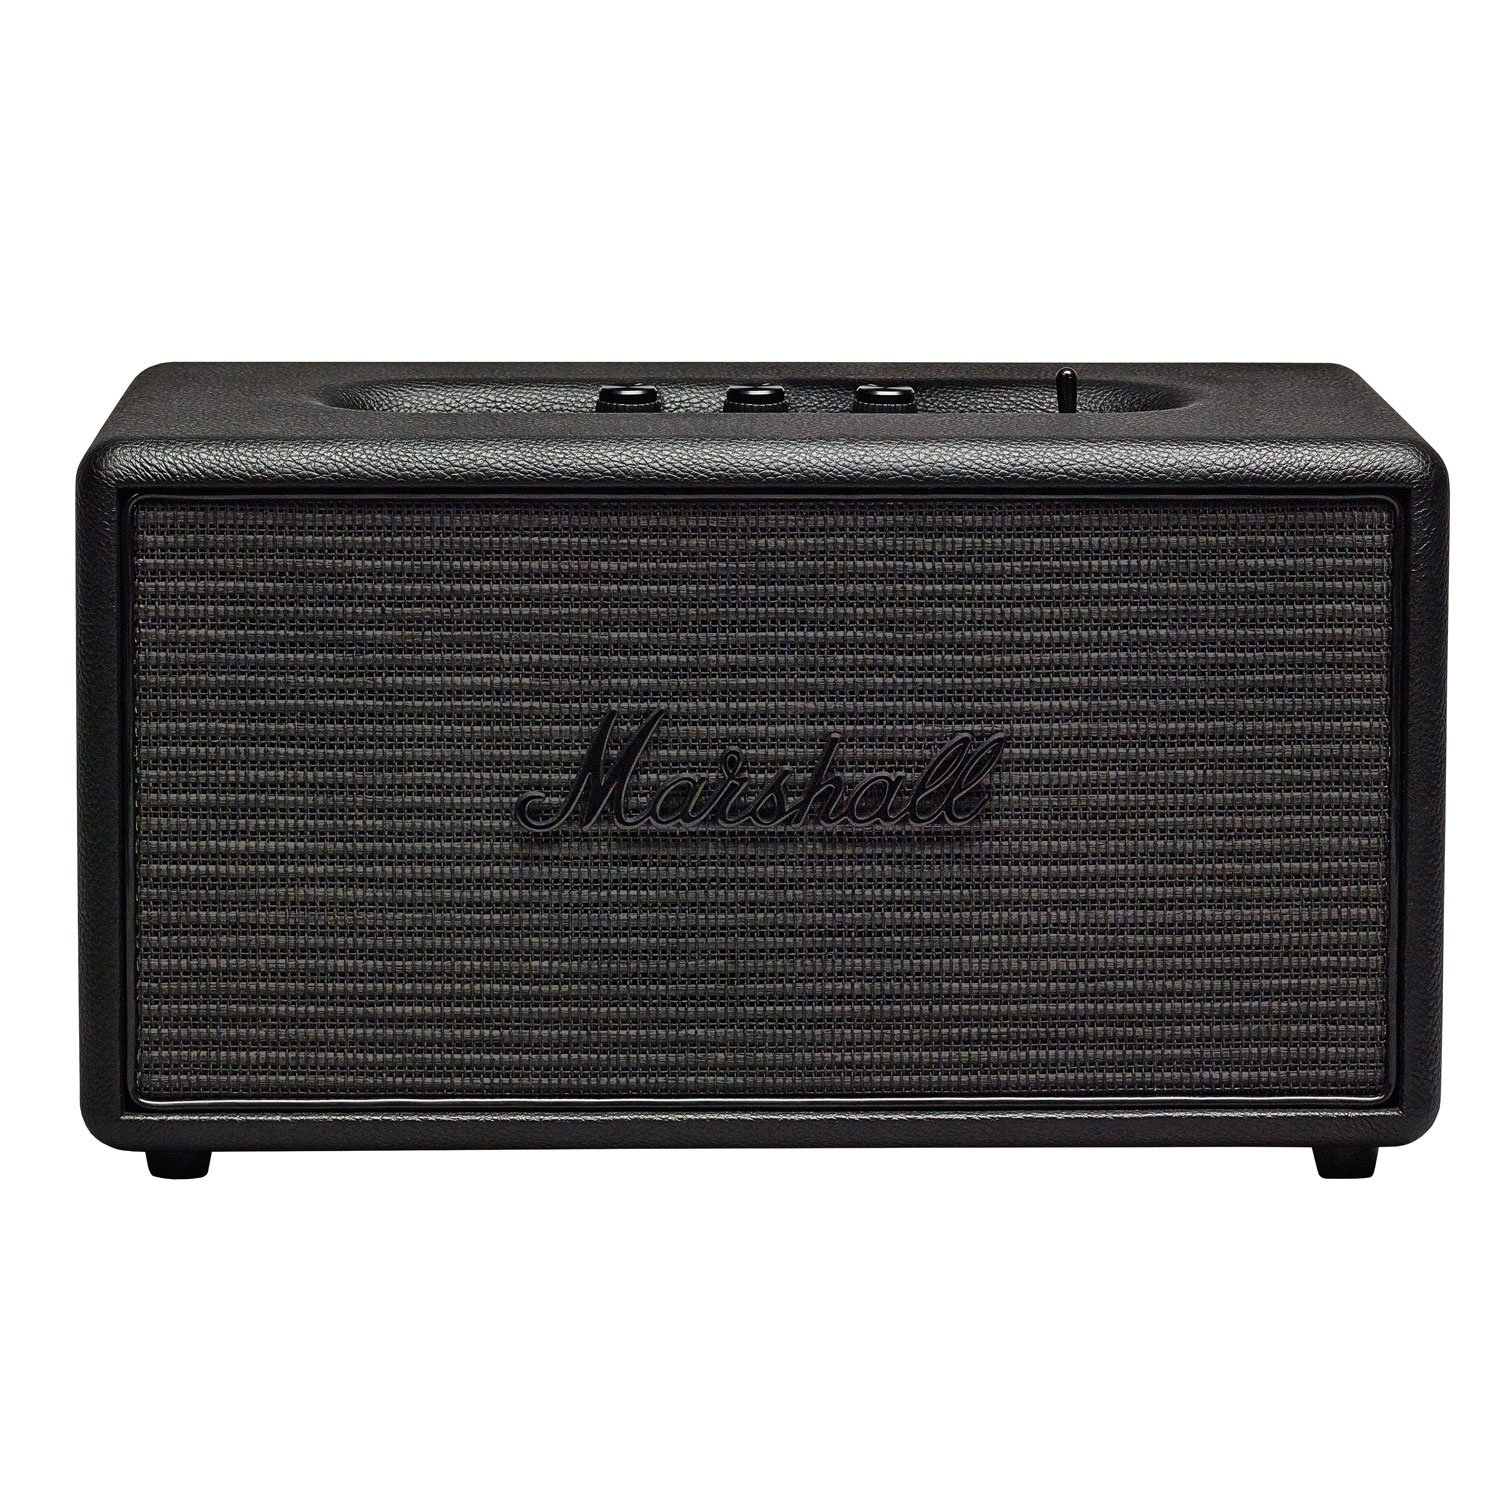 Marshall Stanmore Bluetooth Speaker System in Pitch Black